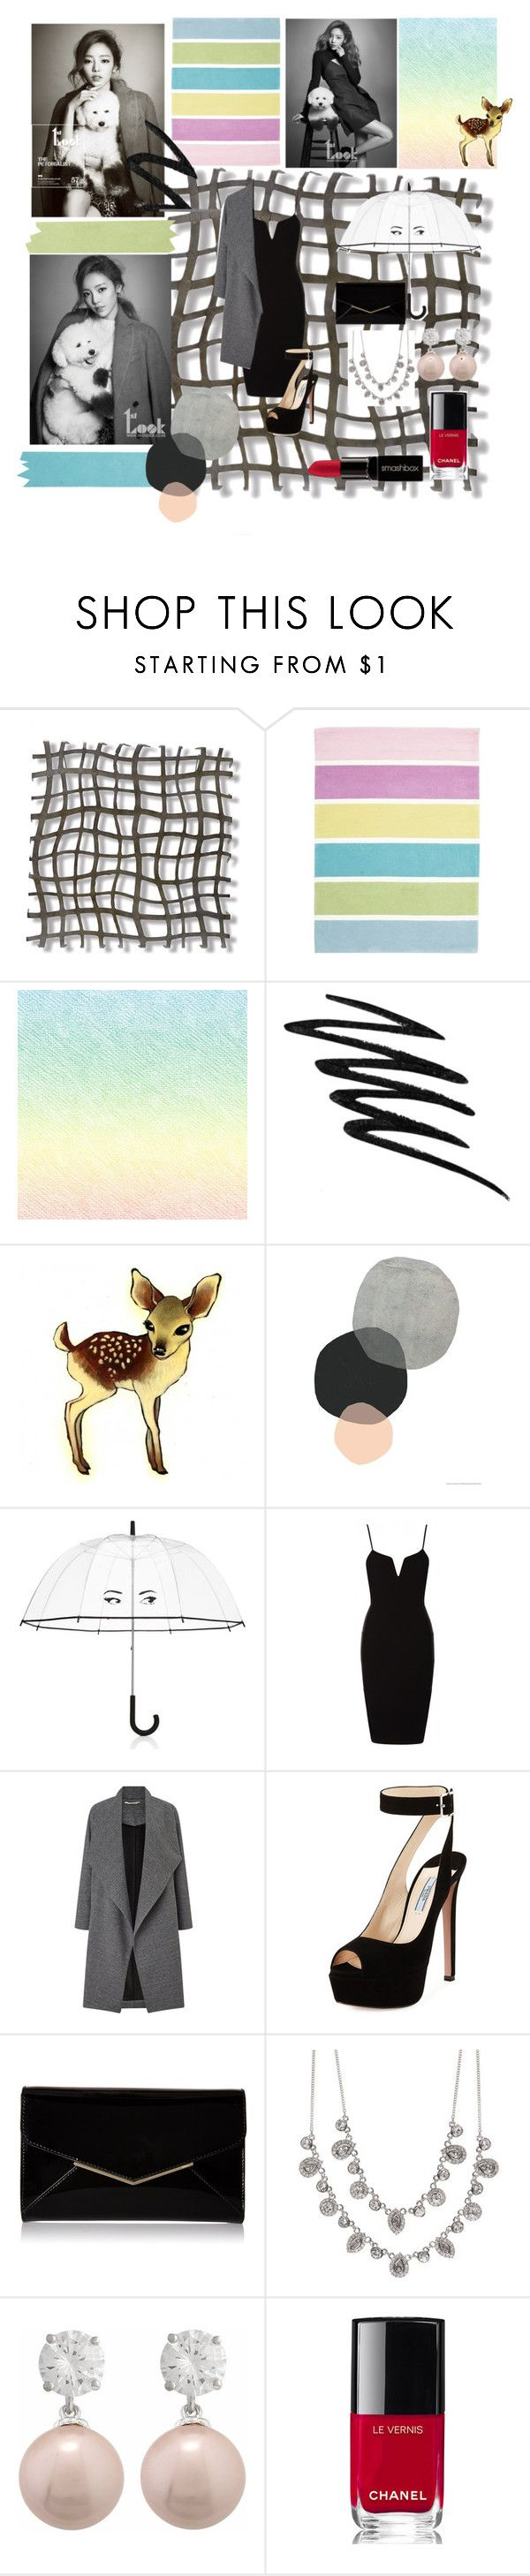 """Goo Ha Ra_""Hit the Lights"""" by taehyung-xo-101 ❤ liked on Polyvore featuring Palecek, Unitex International, Prescriptives, Kate Spade, Miss Selfridge, Prada, Furla, Givenchy, Chanel and Smashbox"